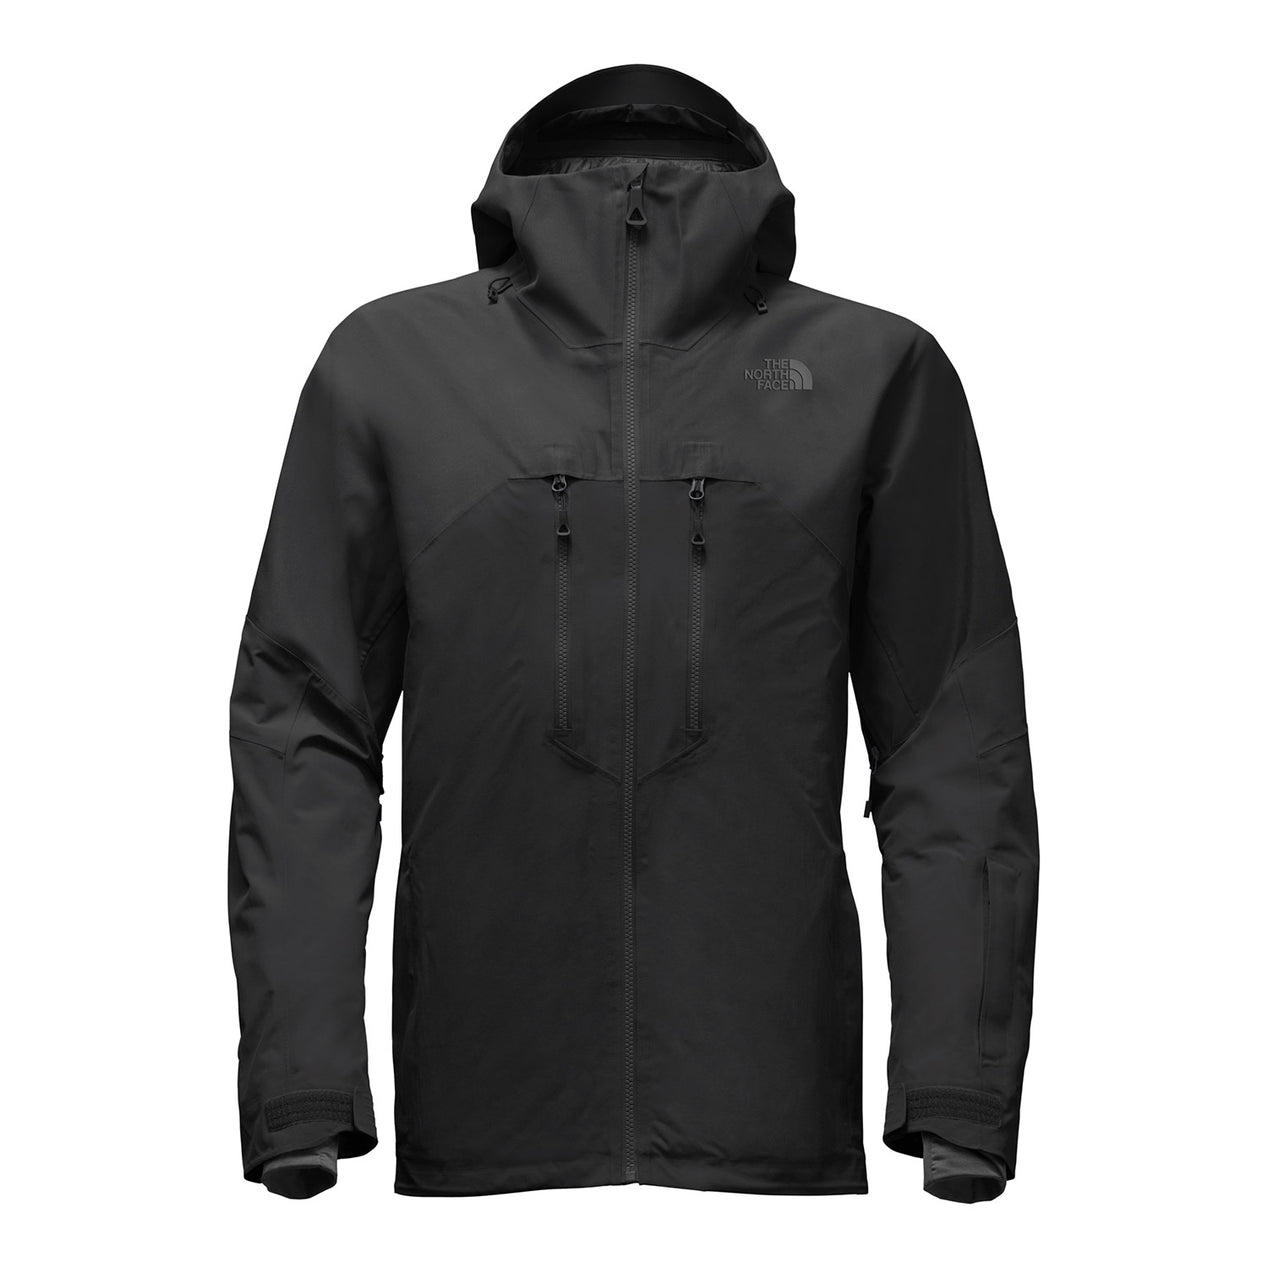 23b6ed677b5d The North Face Men s Powder Guide Jacket